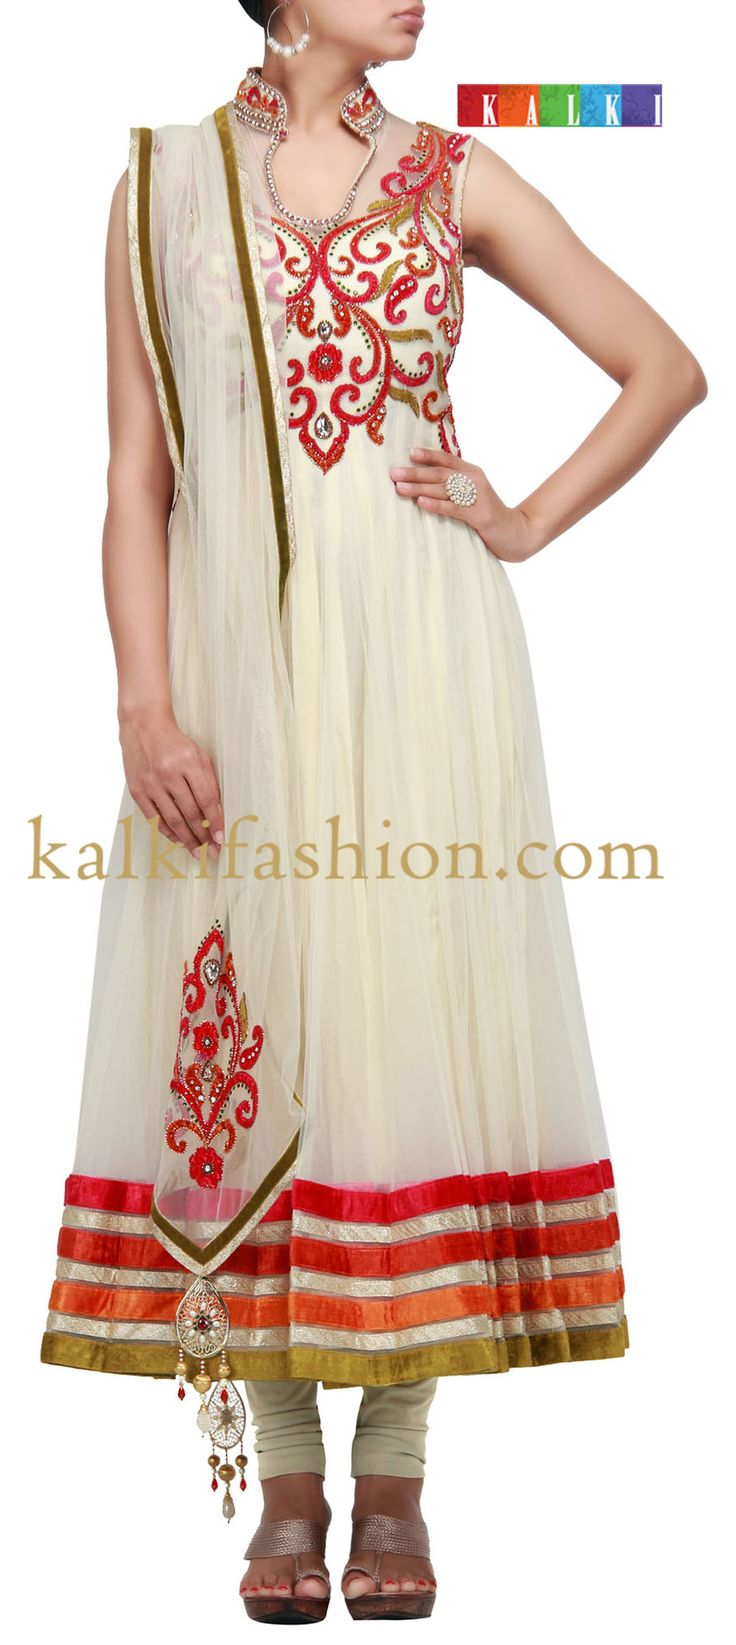 Buy it now http://www.kalkifashion.com/anarkali-suit-in-cream-net-with-velvet-cut-work embroidery.html Anarkali suit in cream net with velvet cut work embroidery